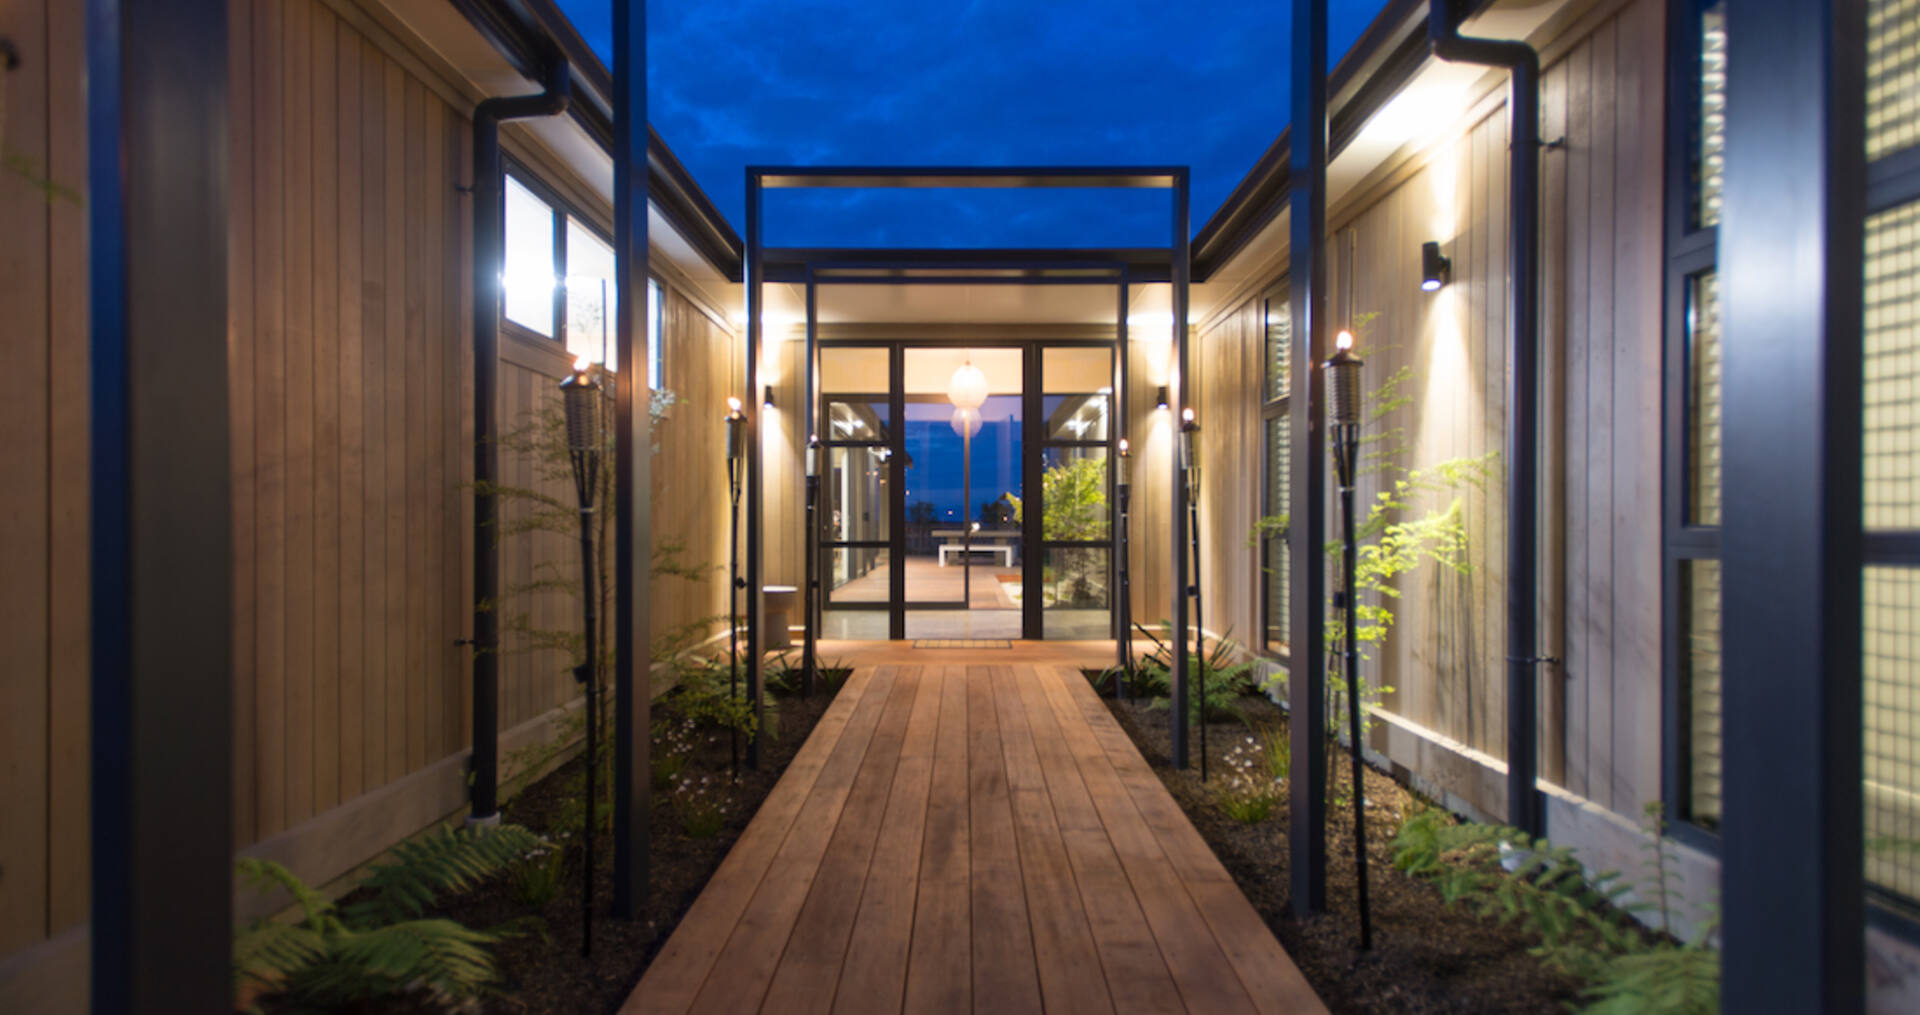 Six things you should do when choosing windows and doors for your home